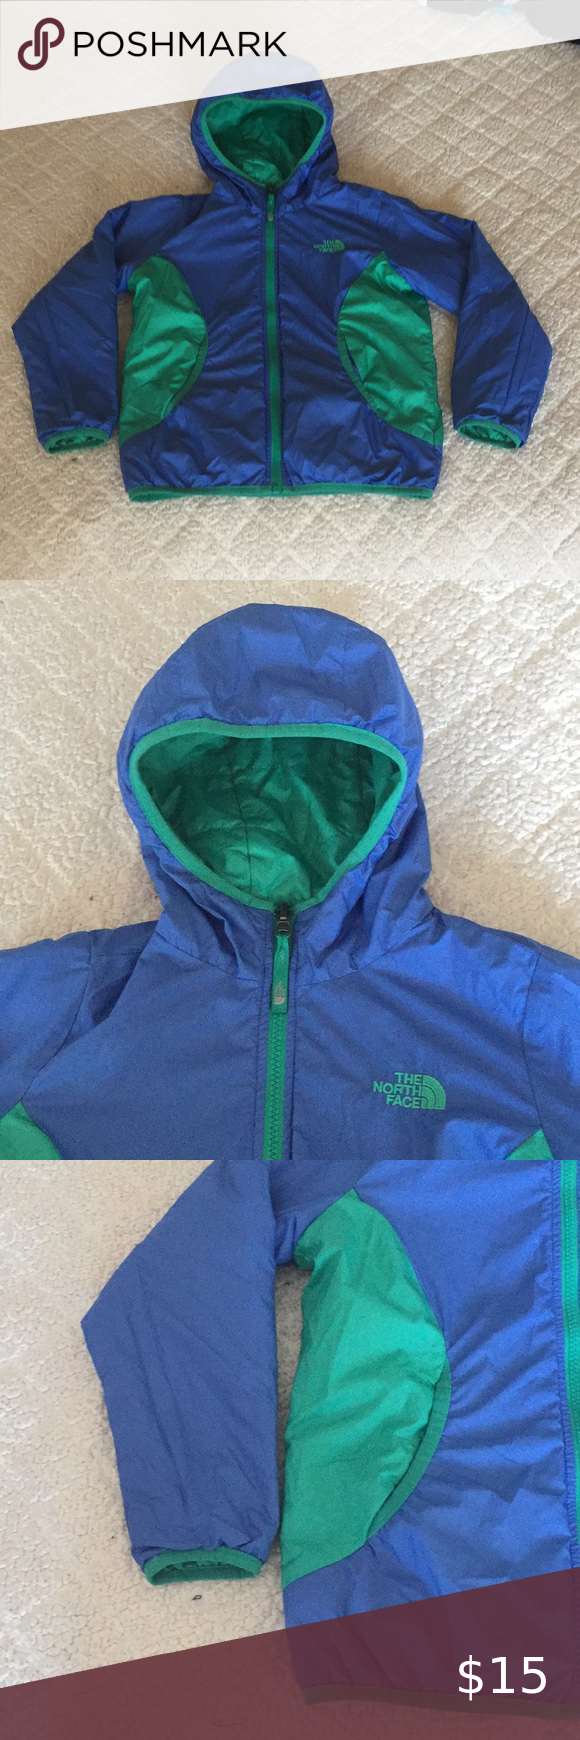 North Face Double Side Ys Girls Jacket Girls Jacket The North Face Jackets [ 1740 x 580 Pixel ]